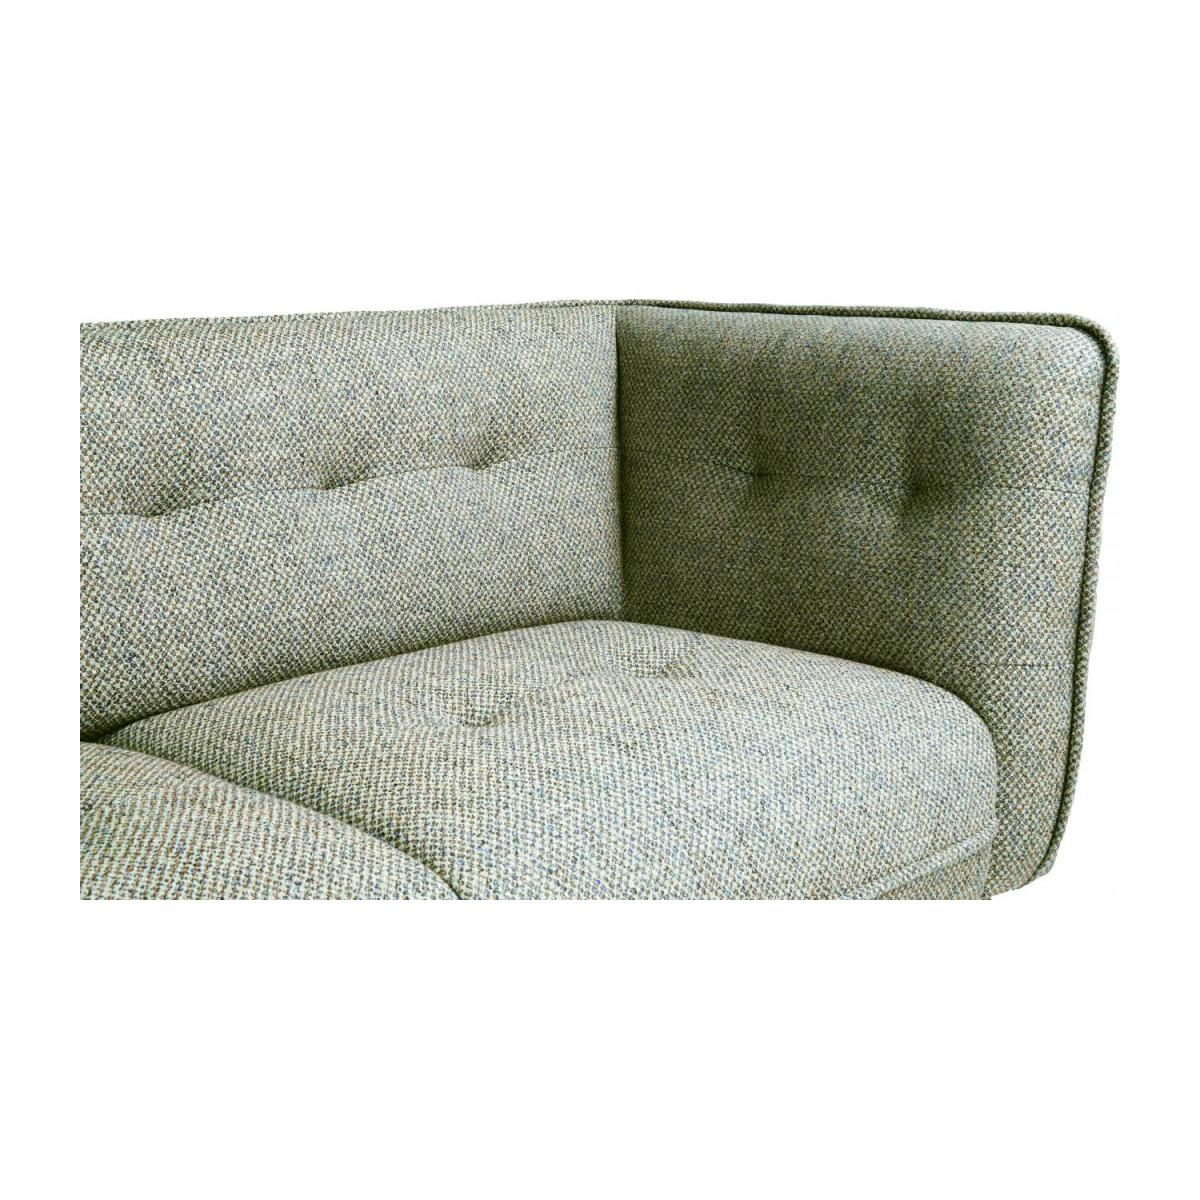 2 seater sofa in Bellagio fabric, organic green and oak legs n°6